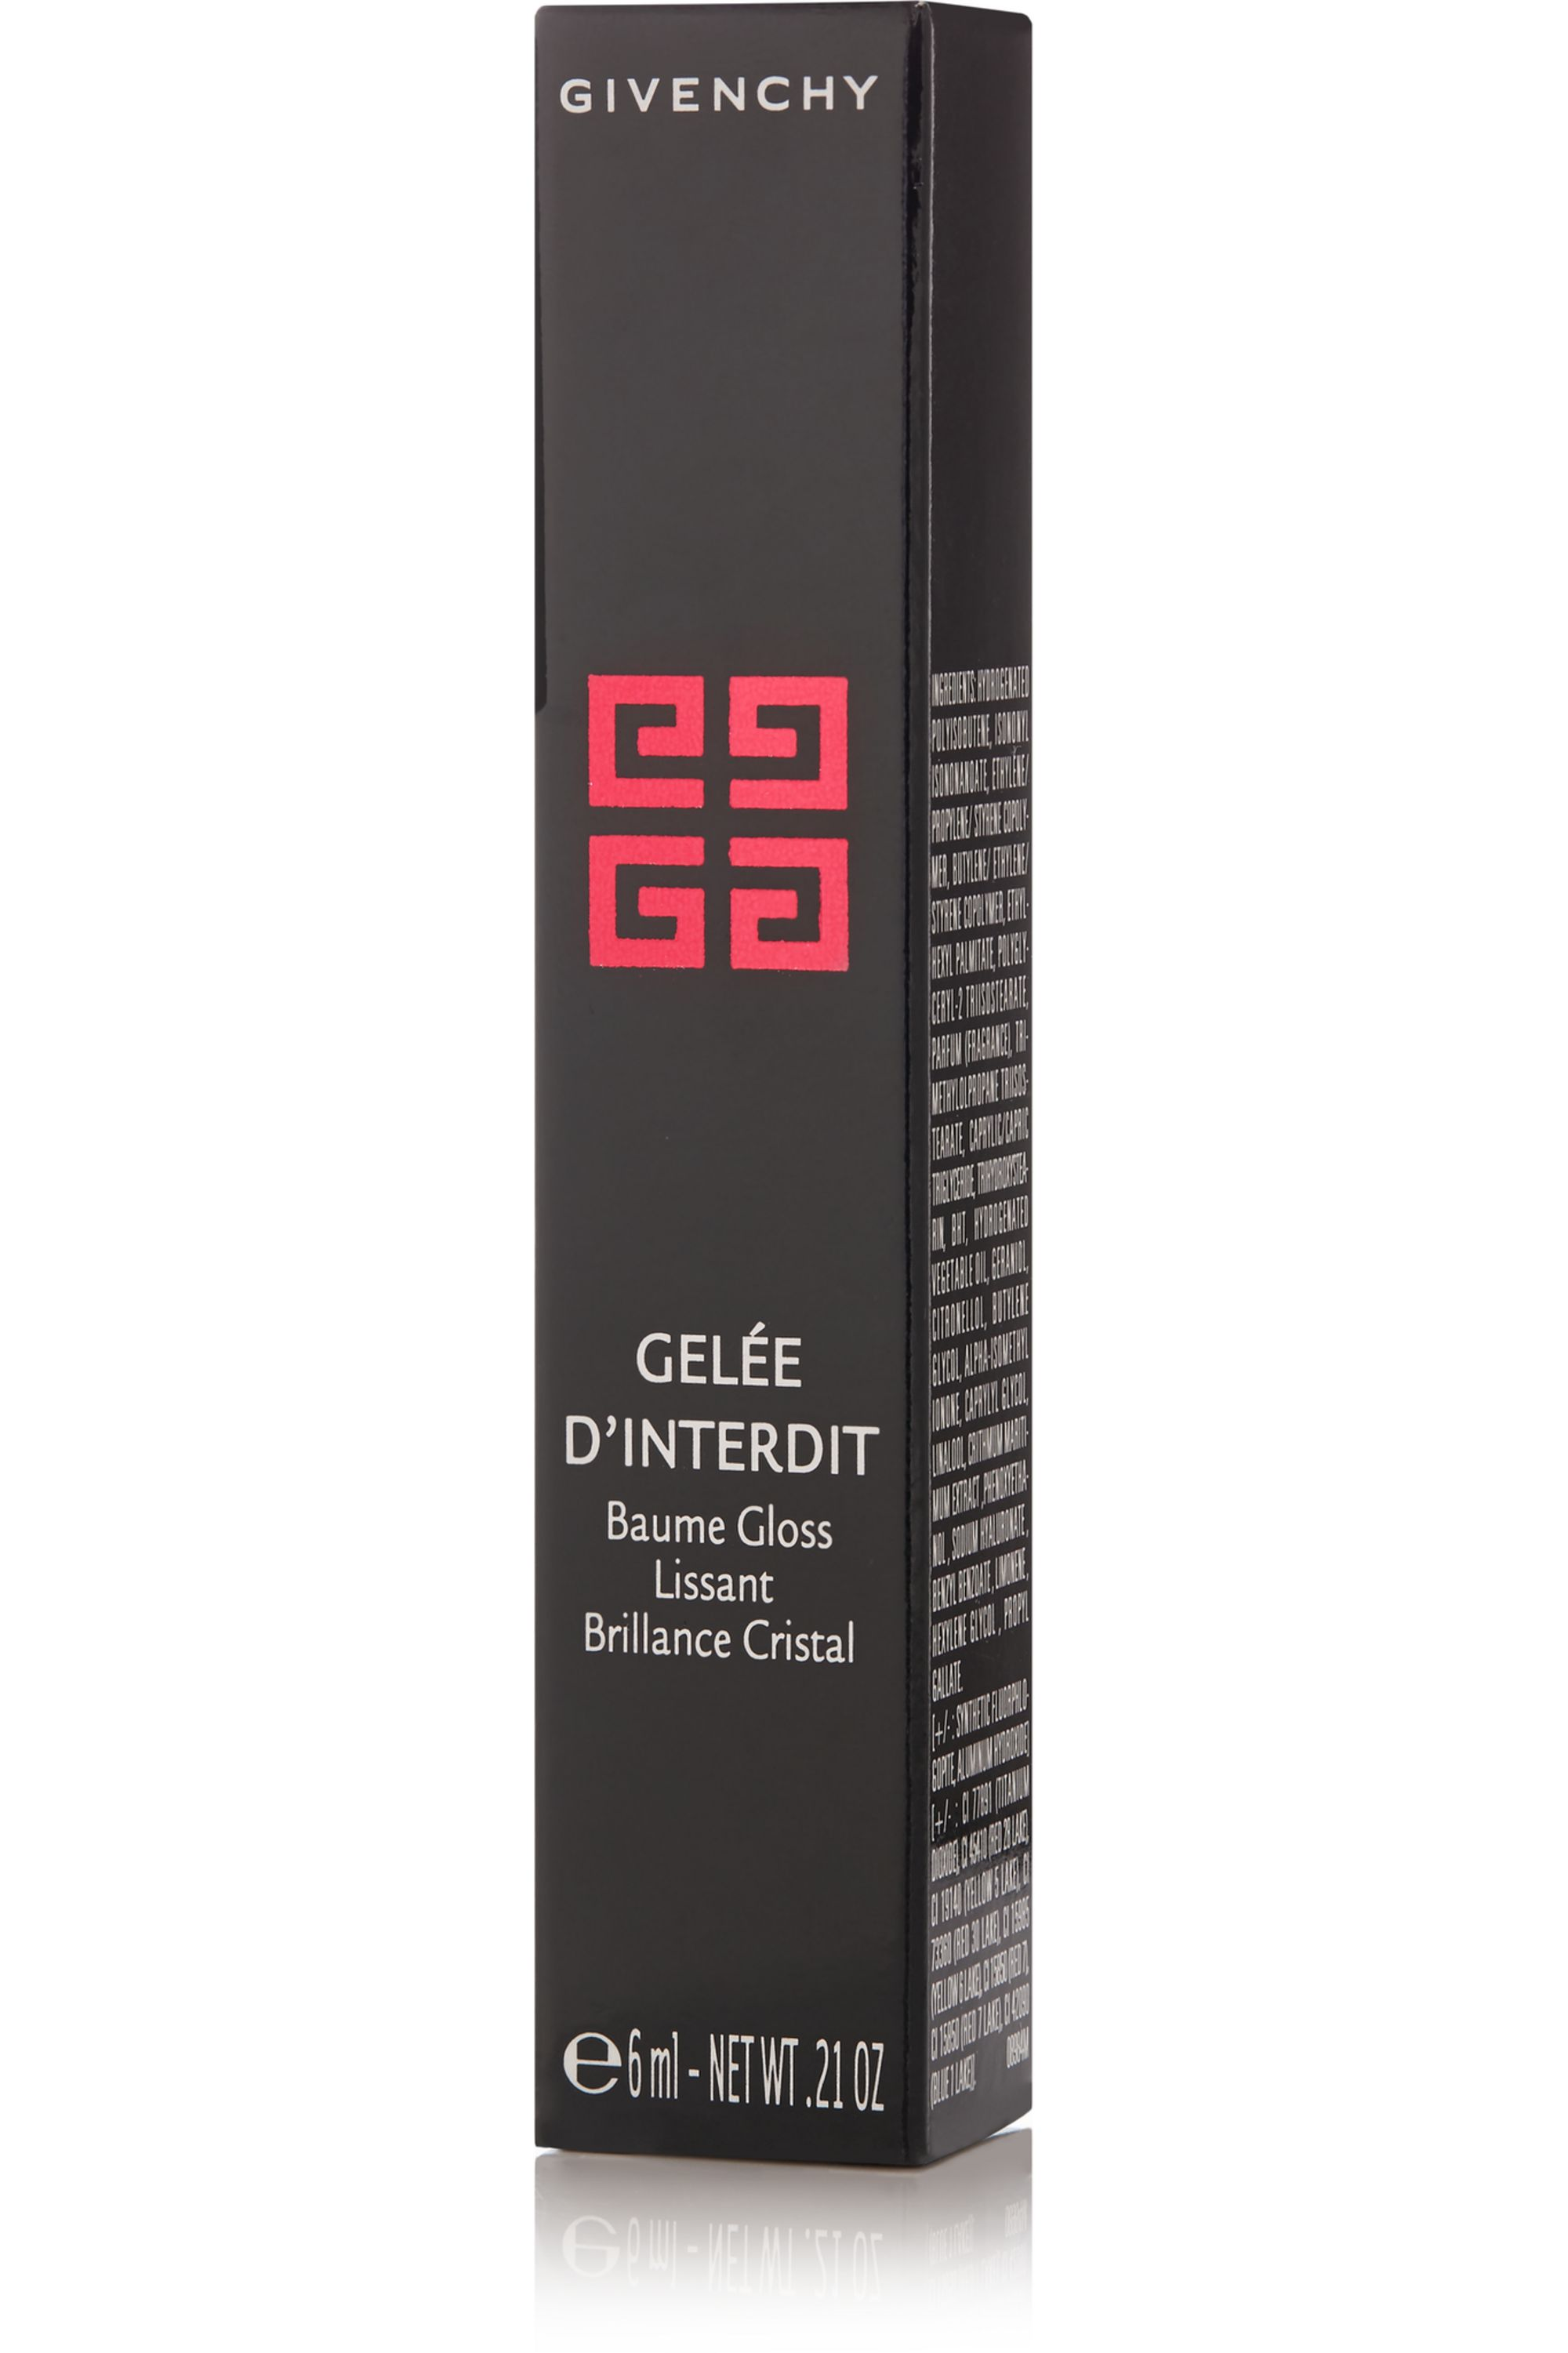 Givenchy Beauty Gelée D'Interdit Crystal Brilliance Smoothing Balm Gloss - No. 2